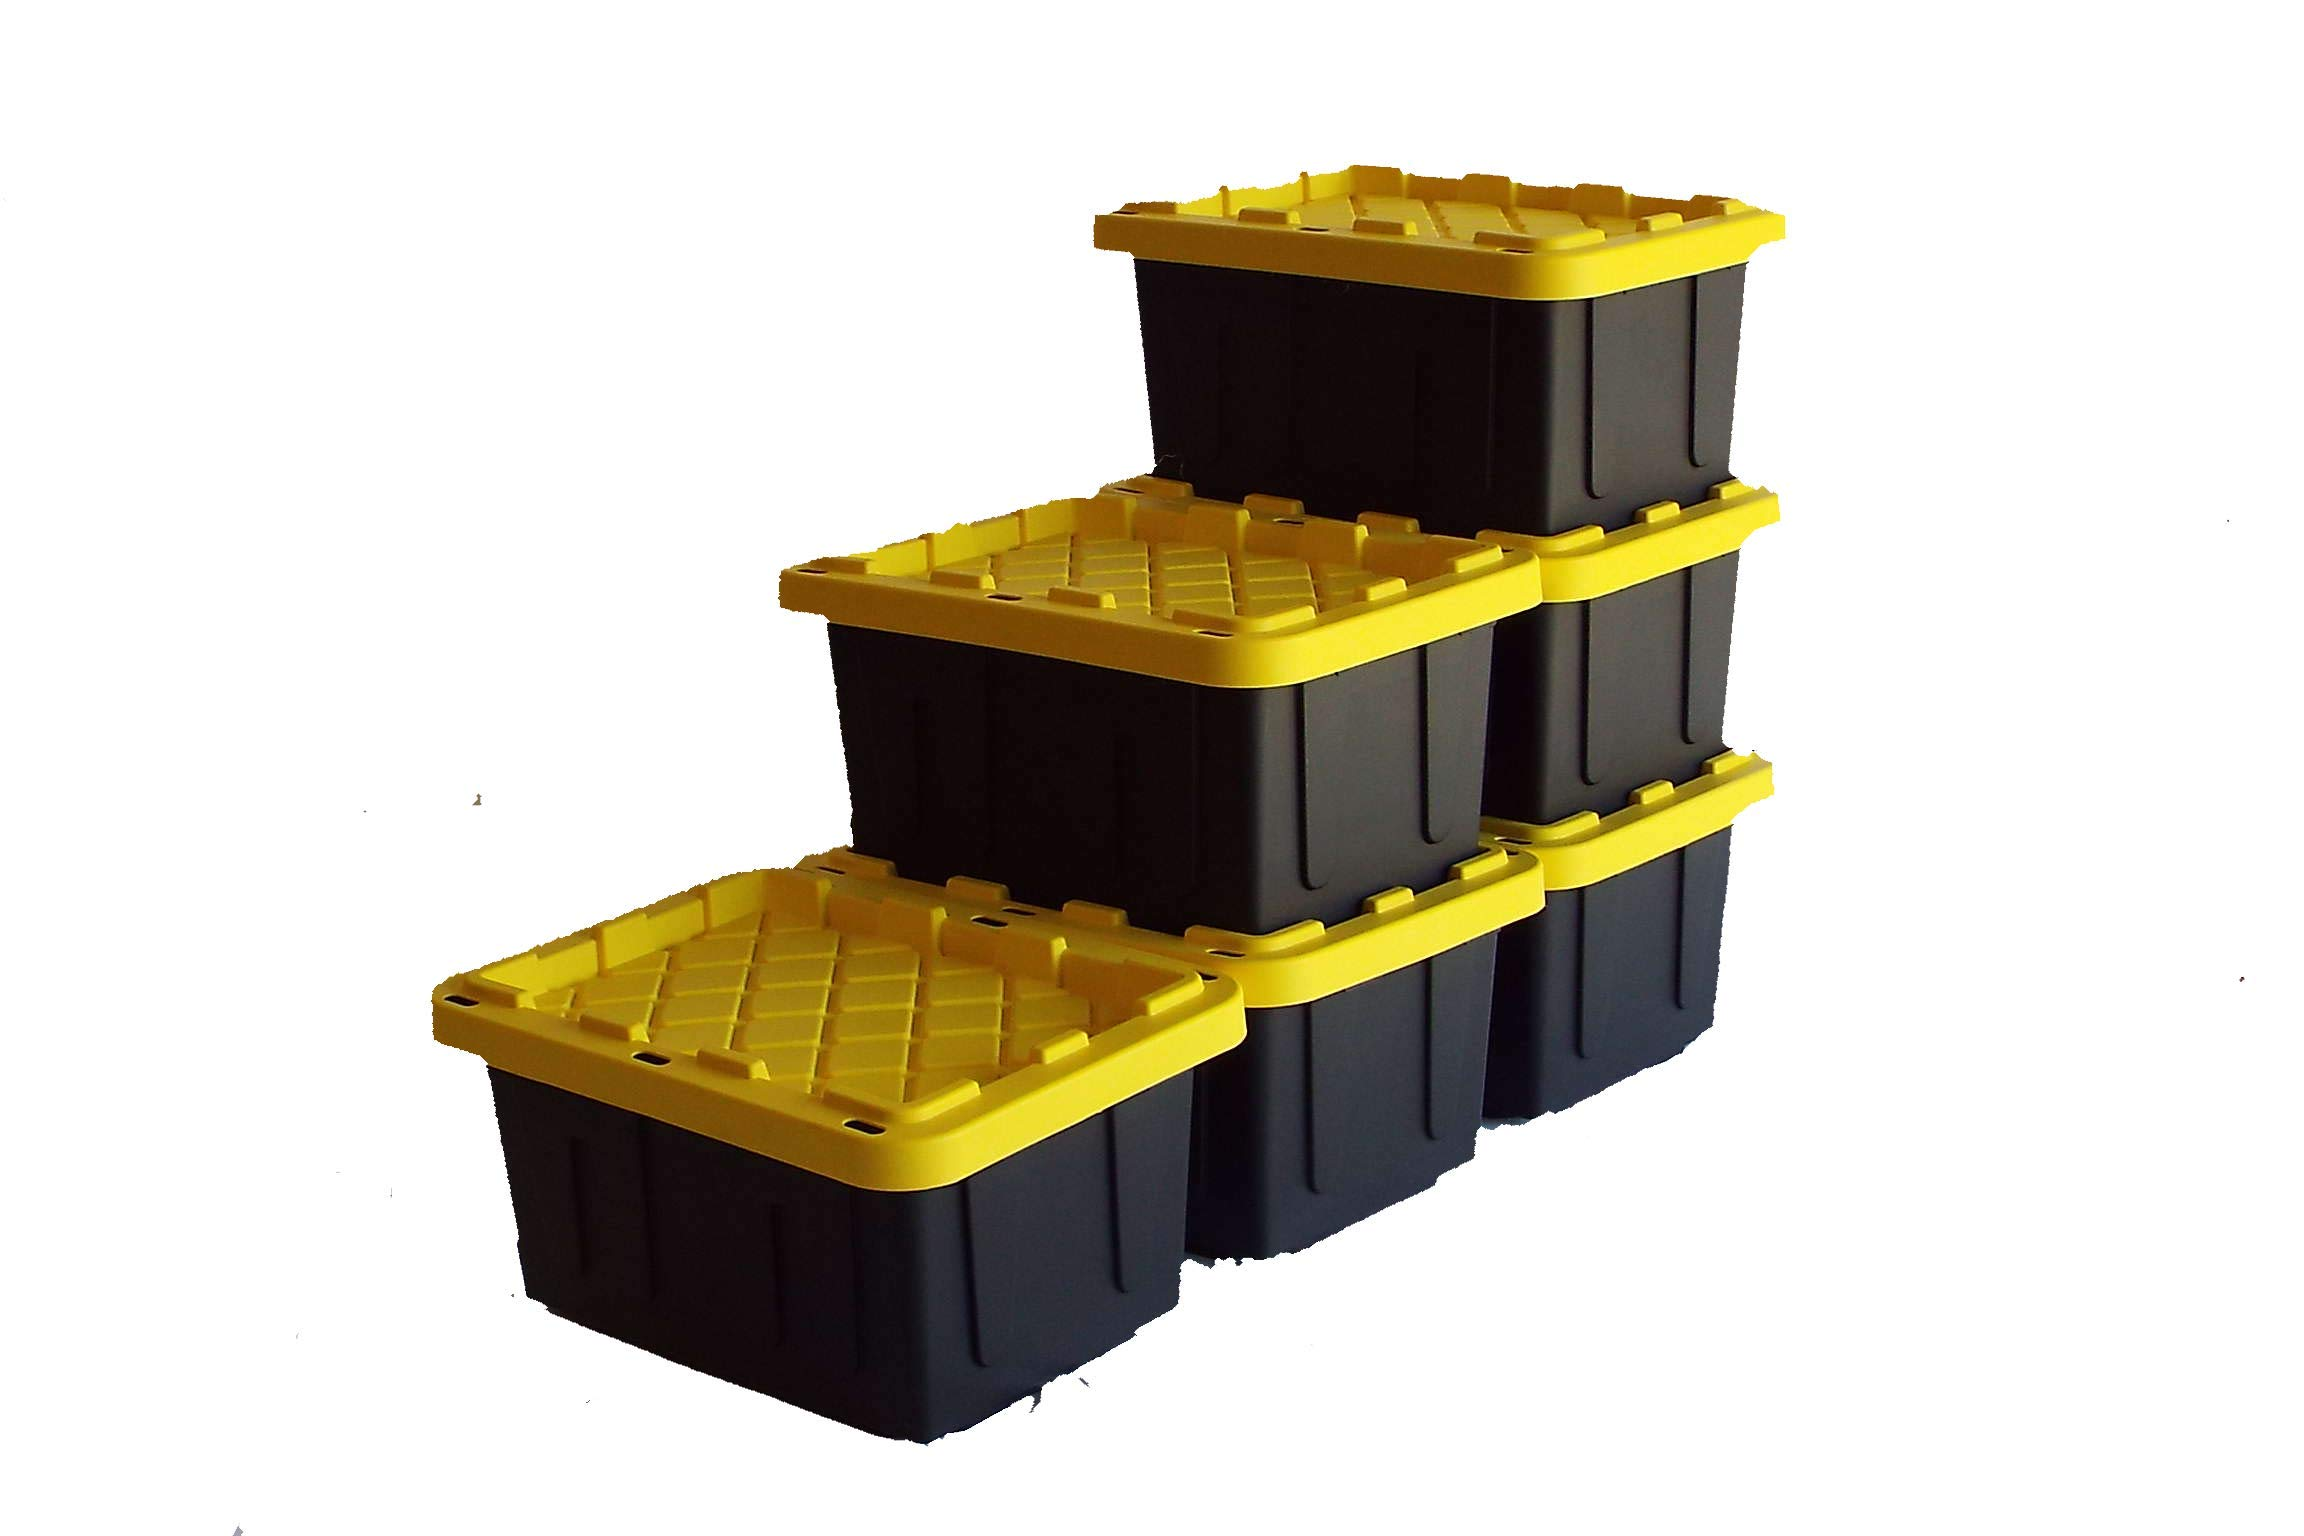 SAFARI USA 5 gallon Heavy Duty Storage Box/Tote With Lids (6 Pack, MADE IN THE USA, 20 Quart, 16''x12''X8.5'') Strong & Stackable Plastic Storage Bins for Under Bed, Garage, Home, Beach, Clothes & More!